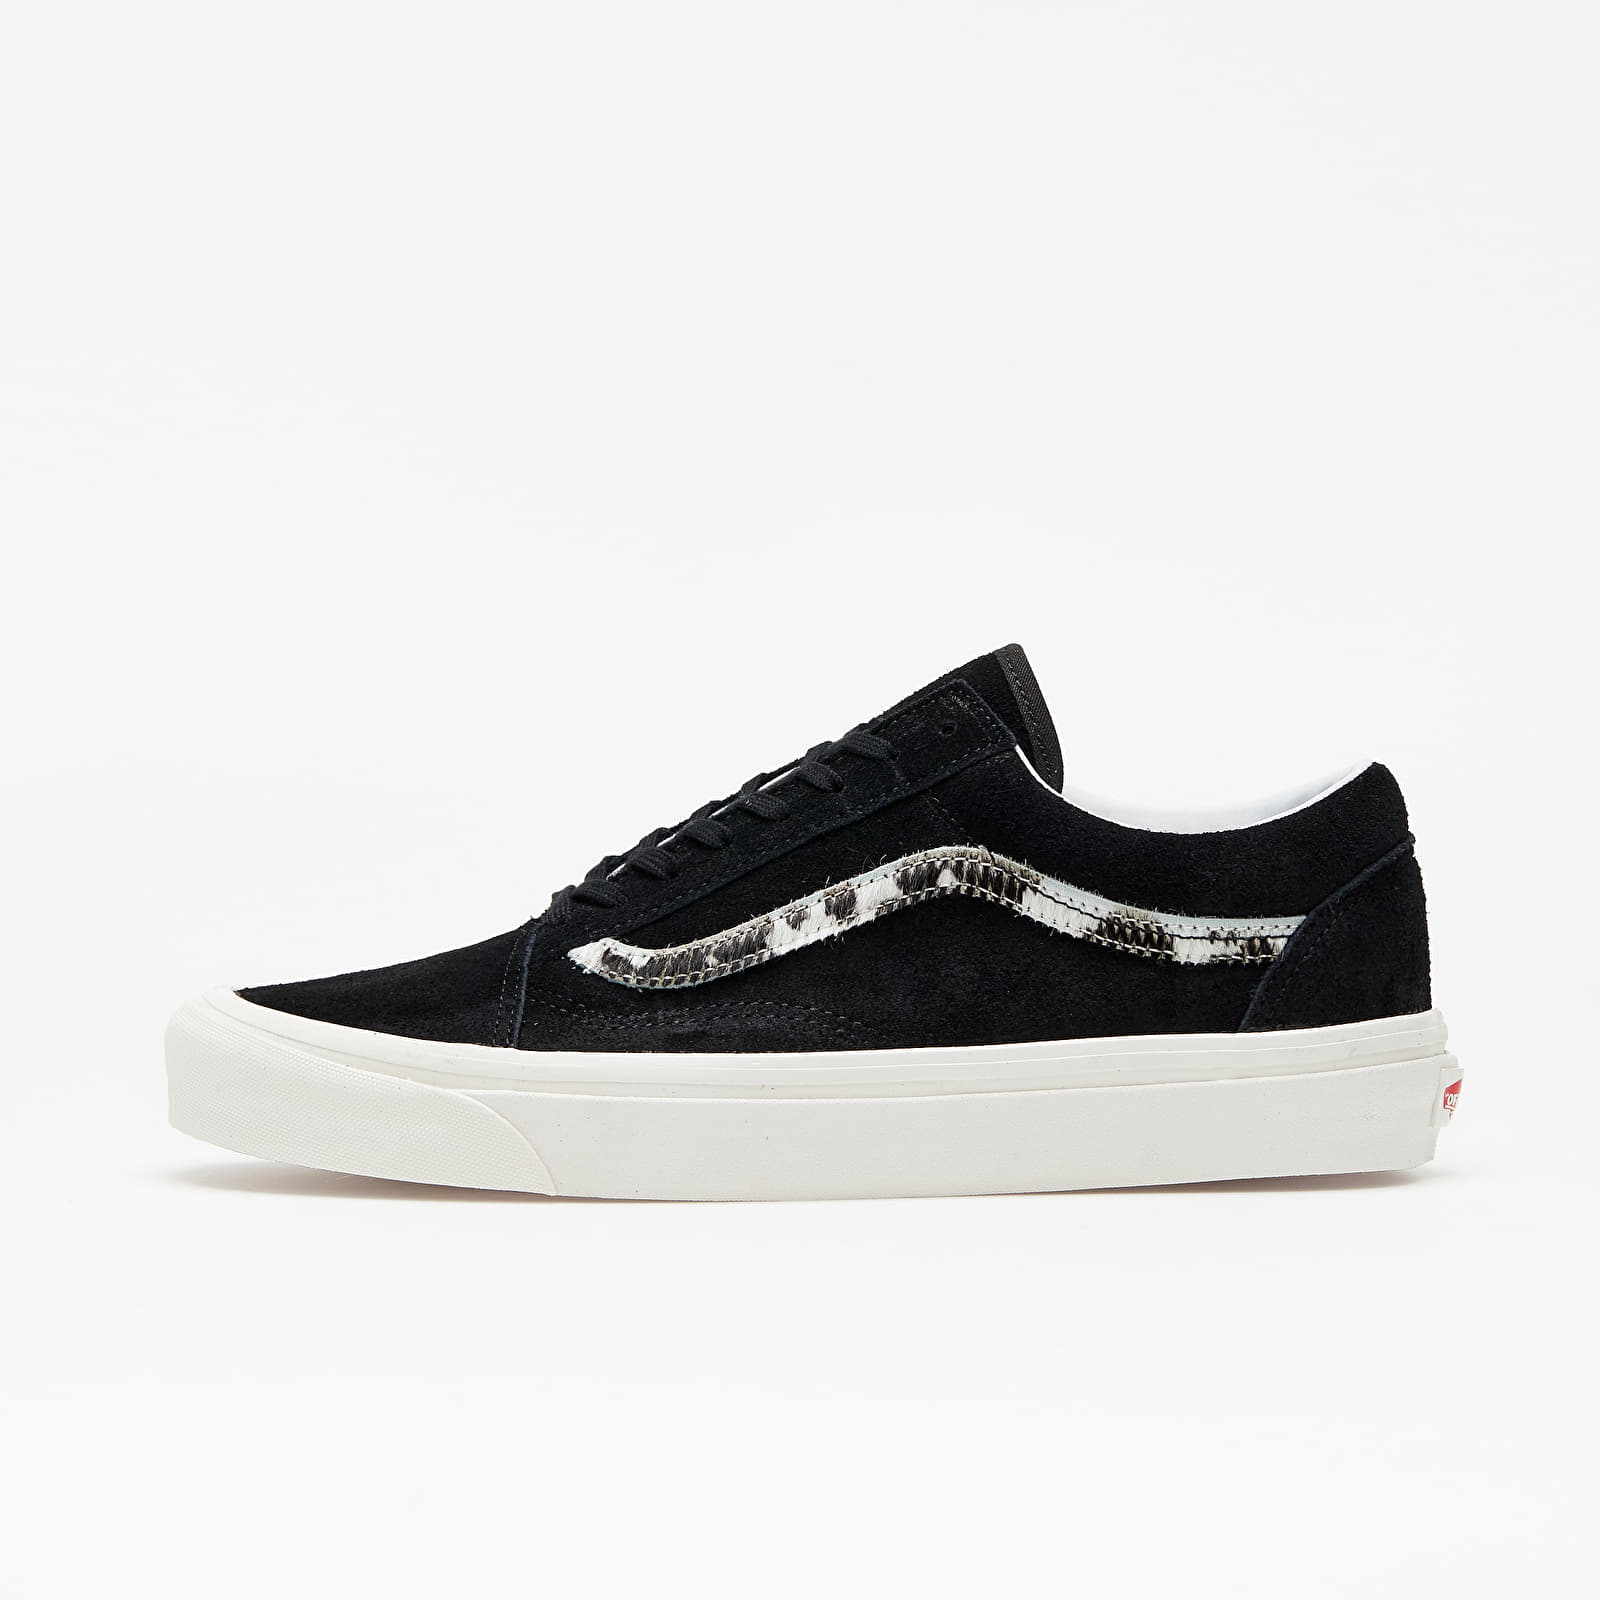 Vans Old Skool 36 DX (Anaheim Factory) Black/ Cow EUR 36.5